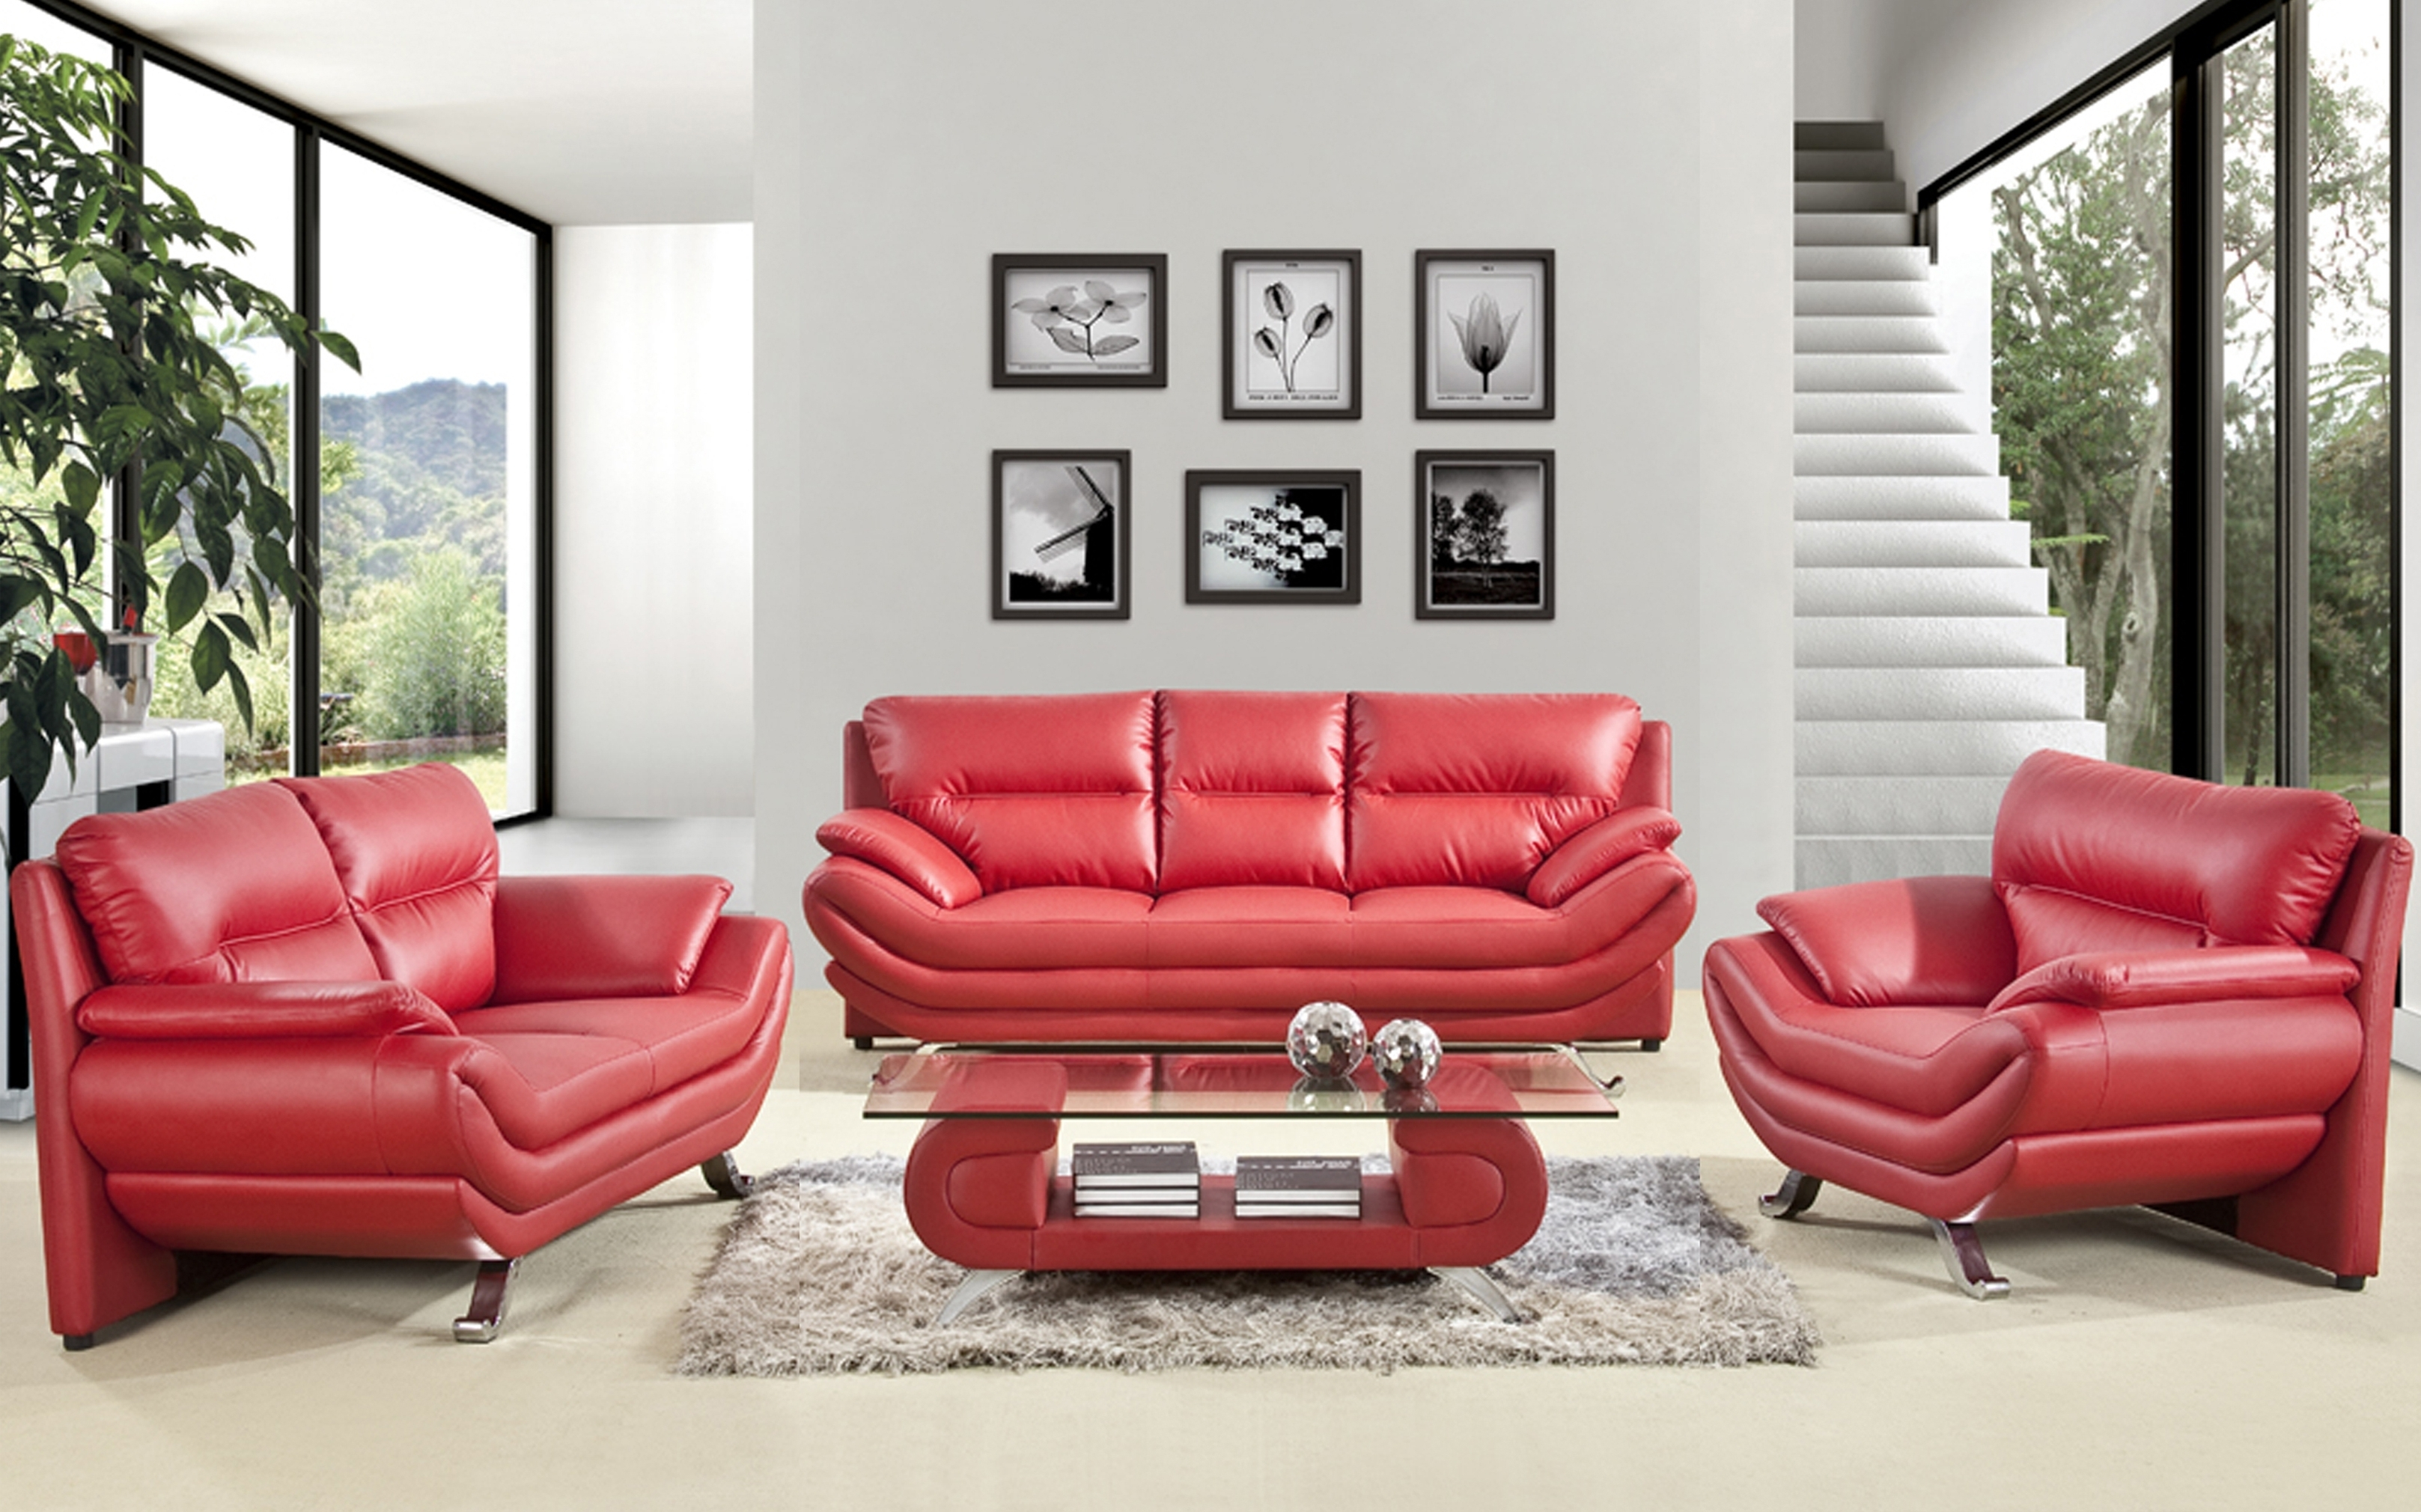 Current Red Leather Sofa Living Room Design • Living Room Design Within Red Leather Couches For Living Room (View 10 of 15)